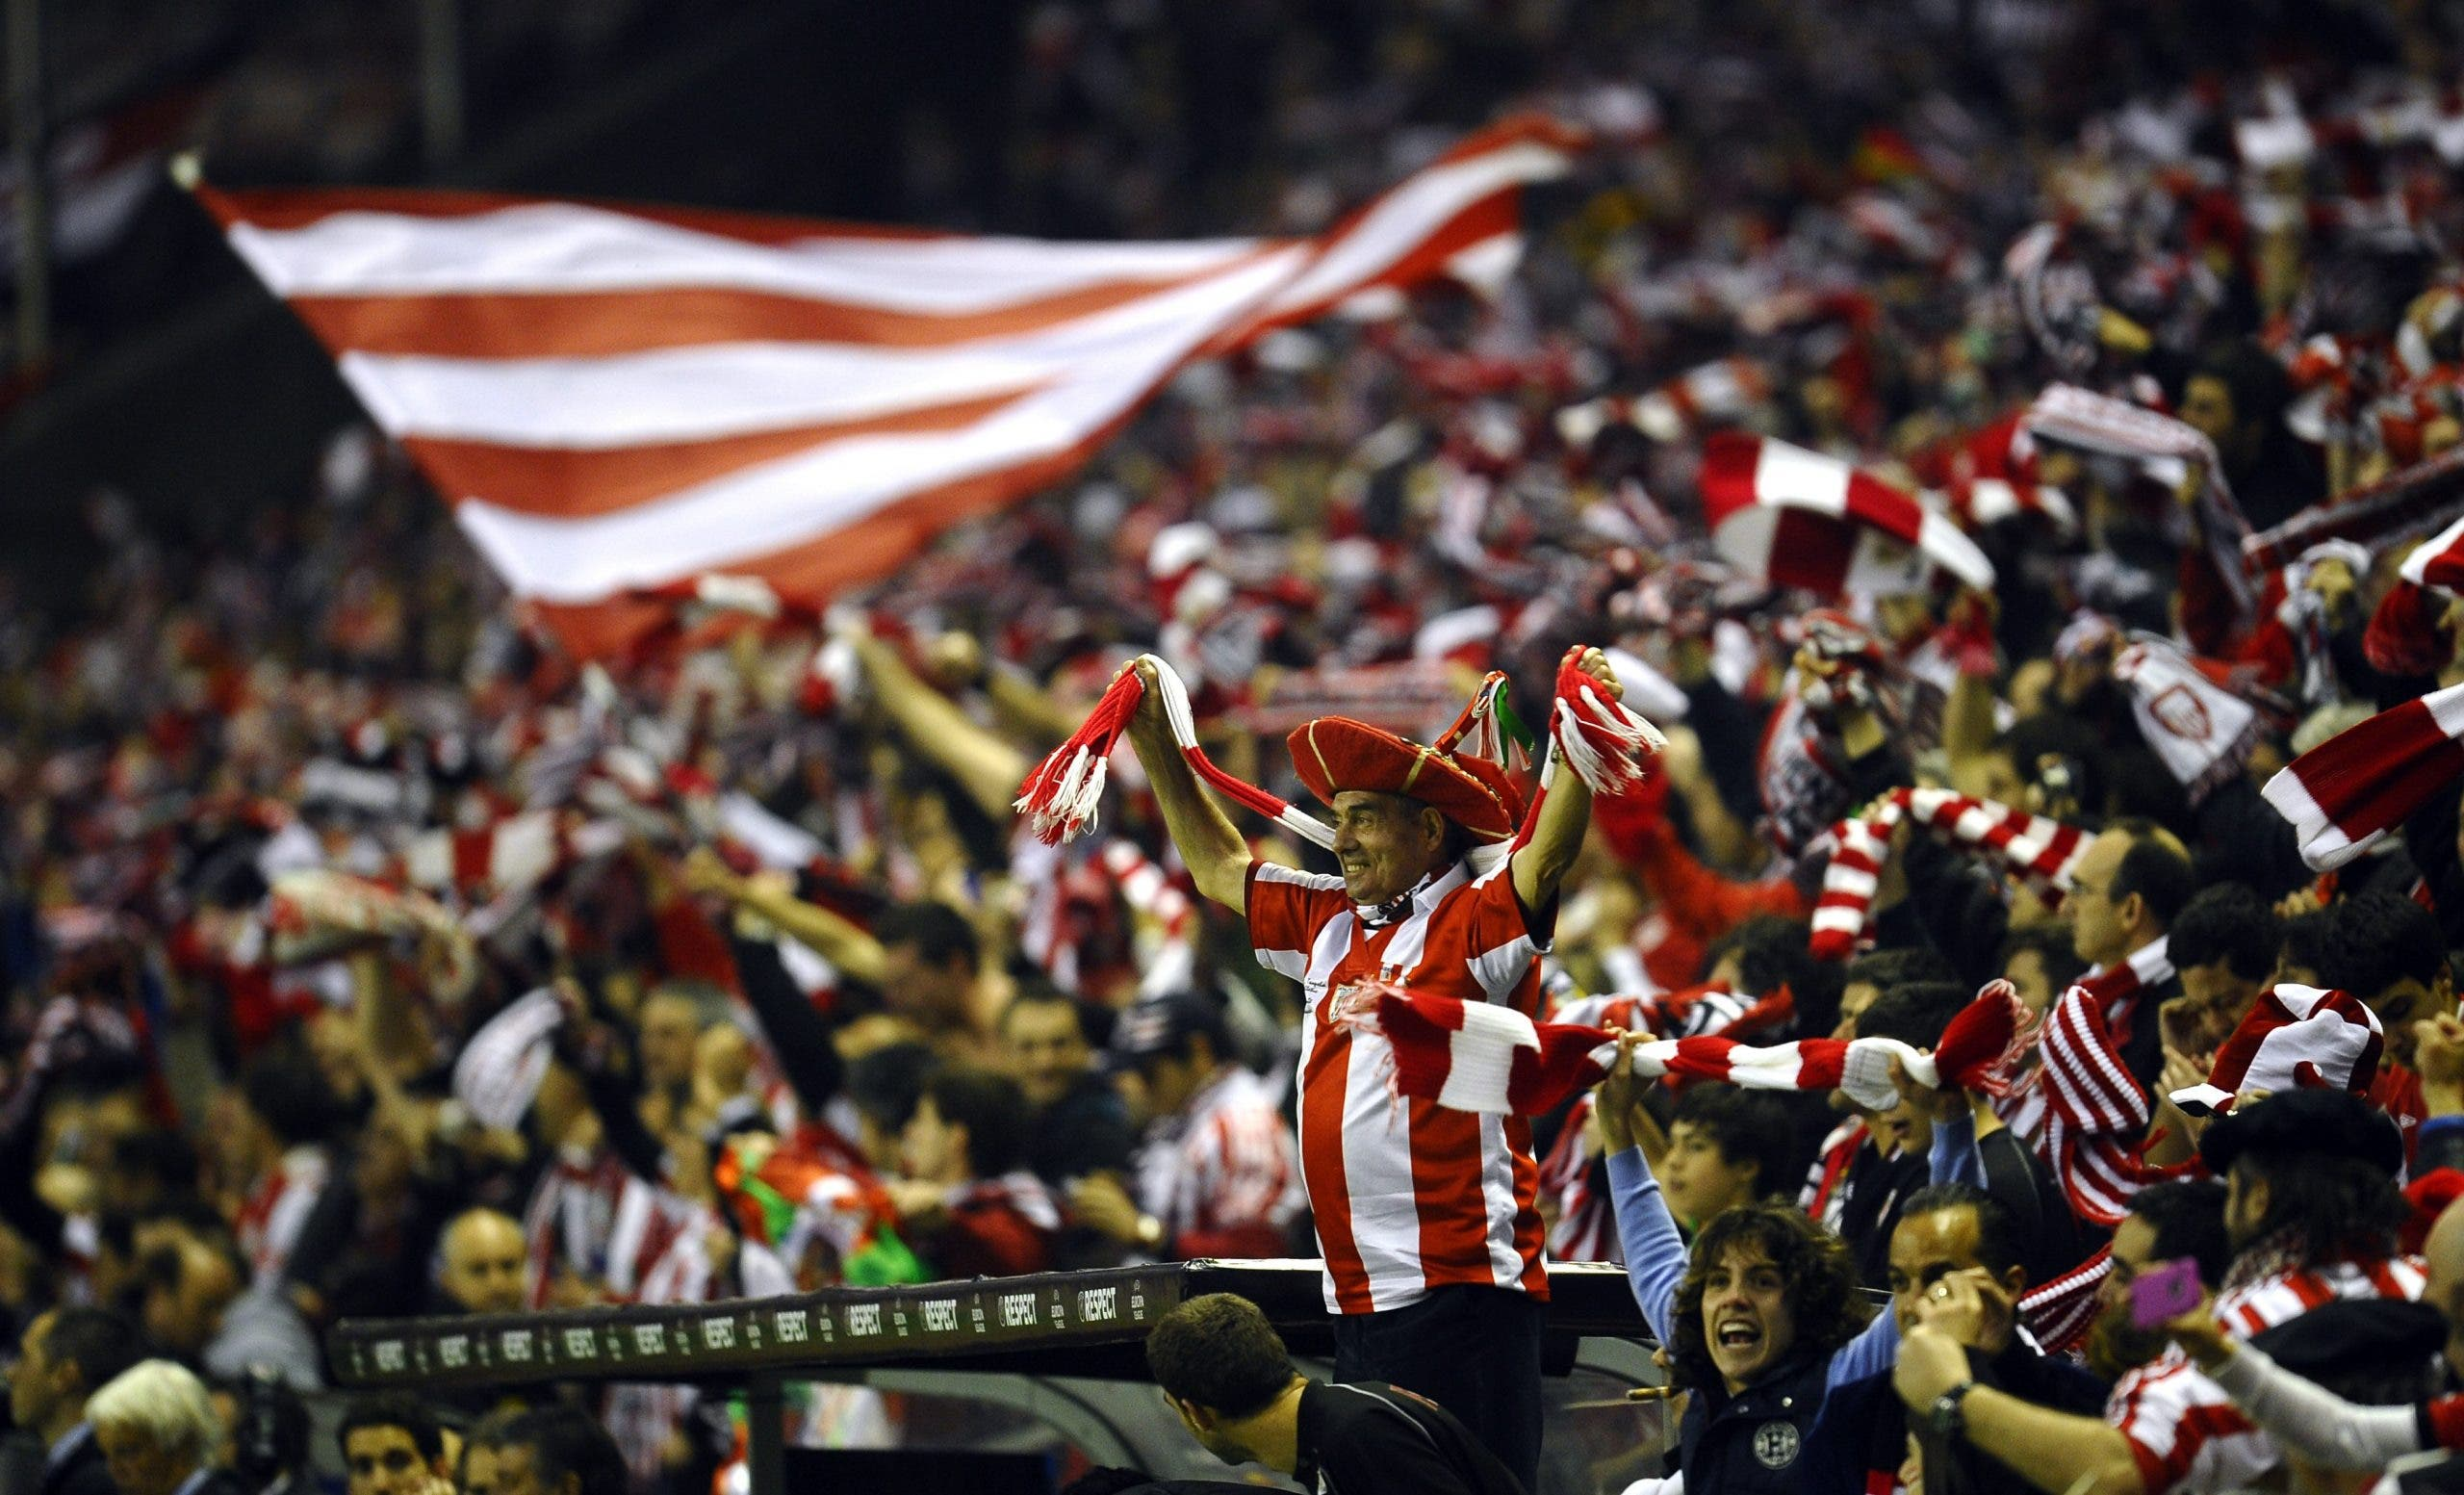 Athletic socios